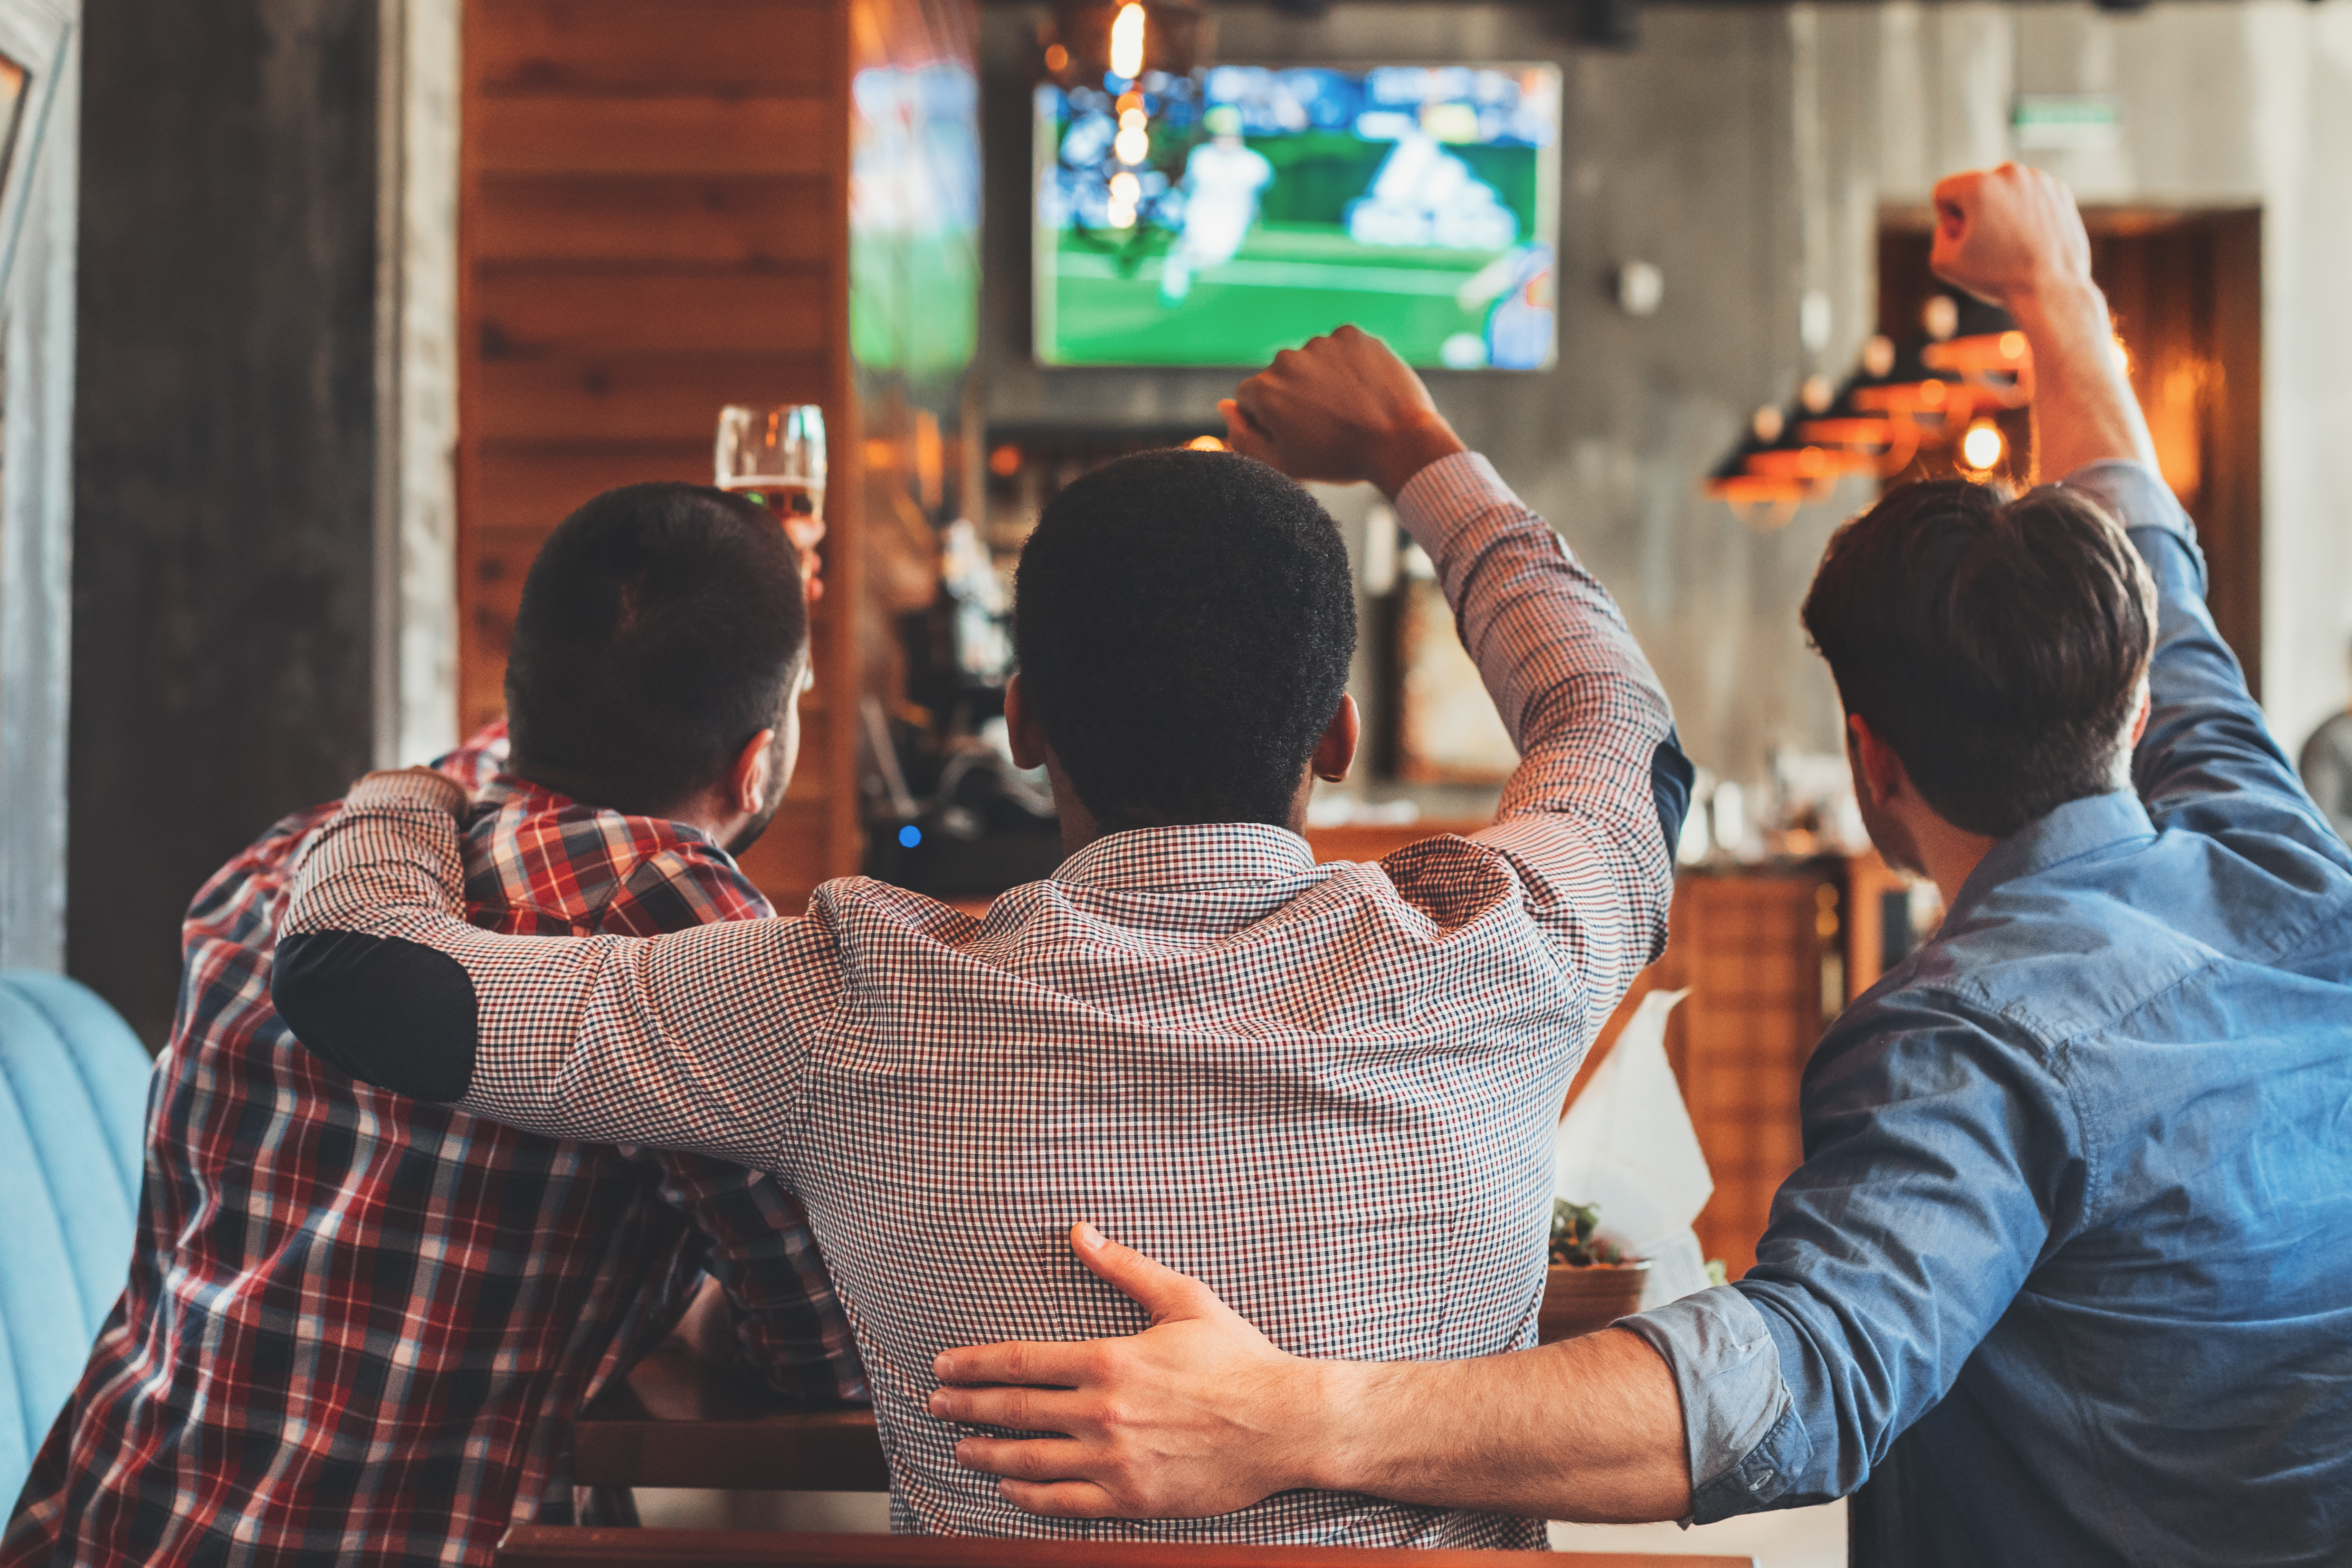 Three men watching football on TV in sport bar, back view